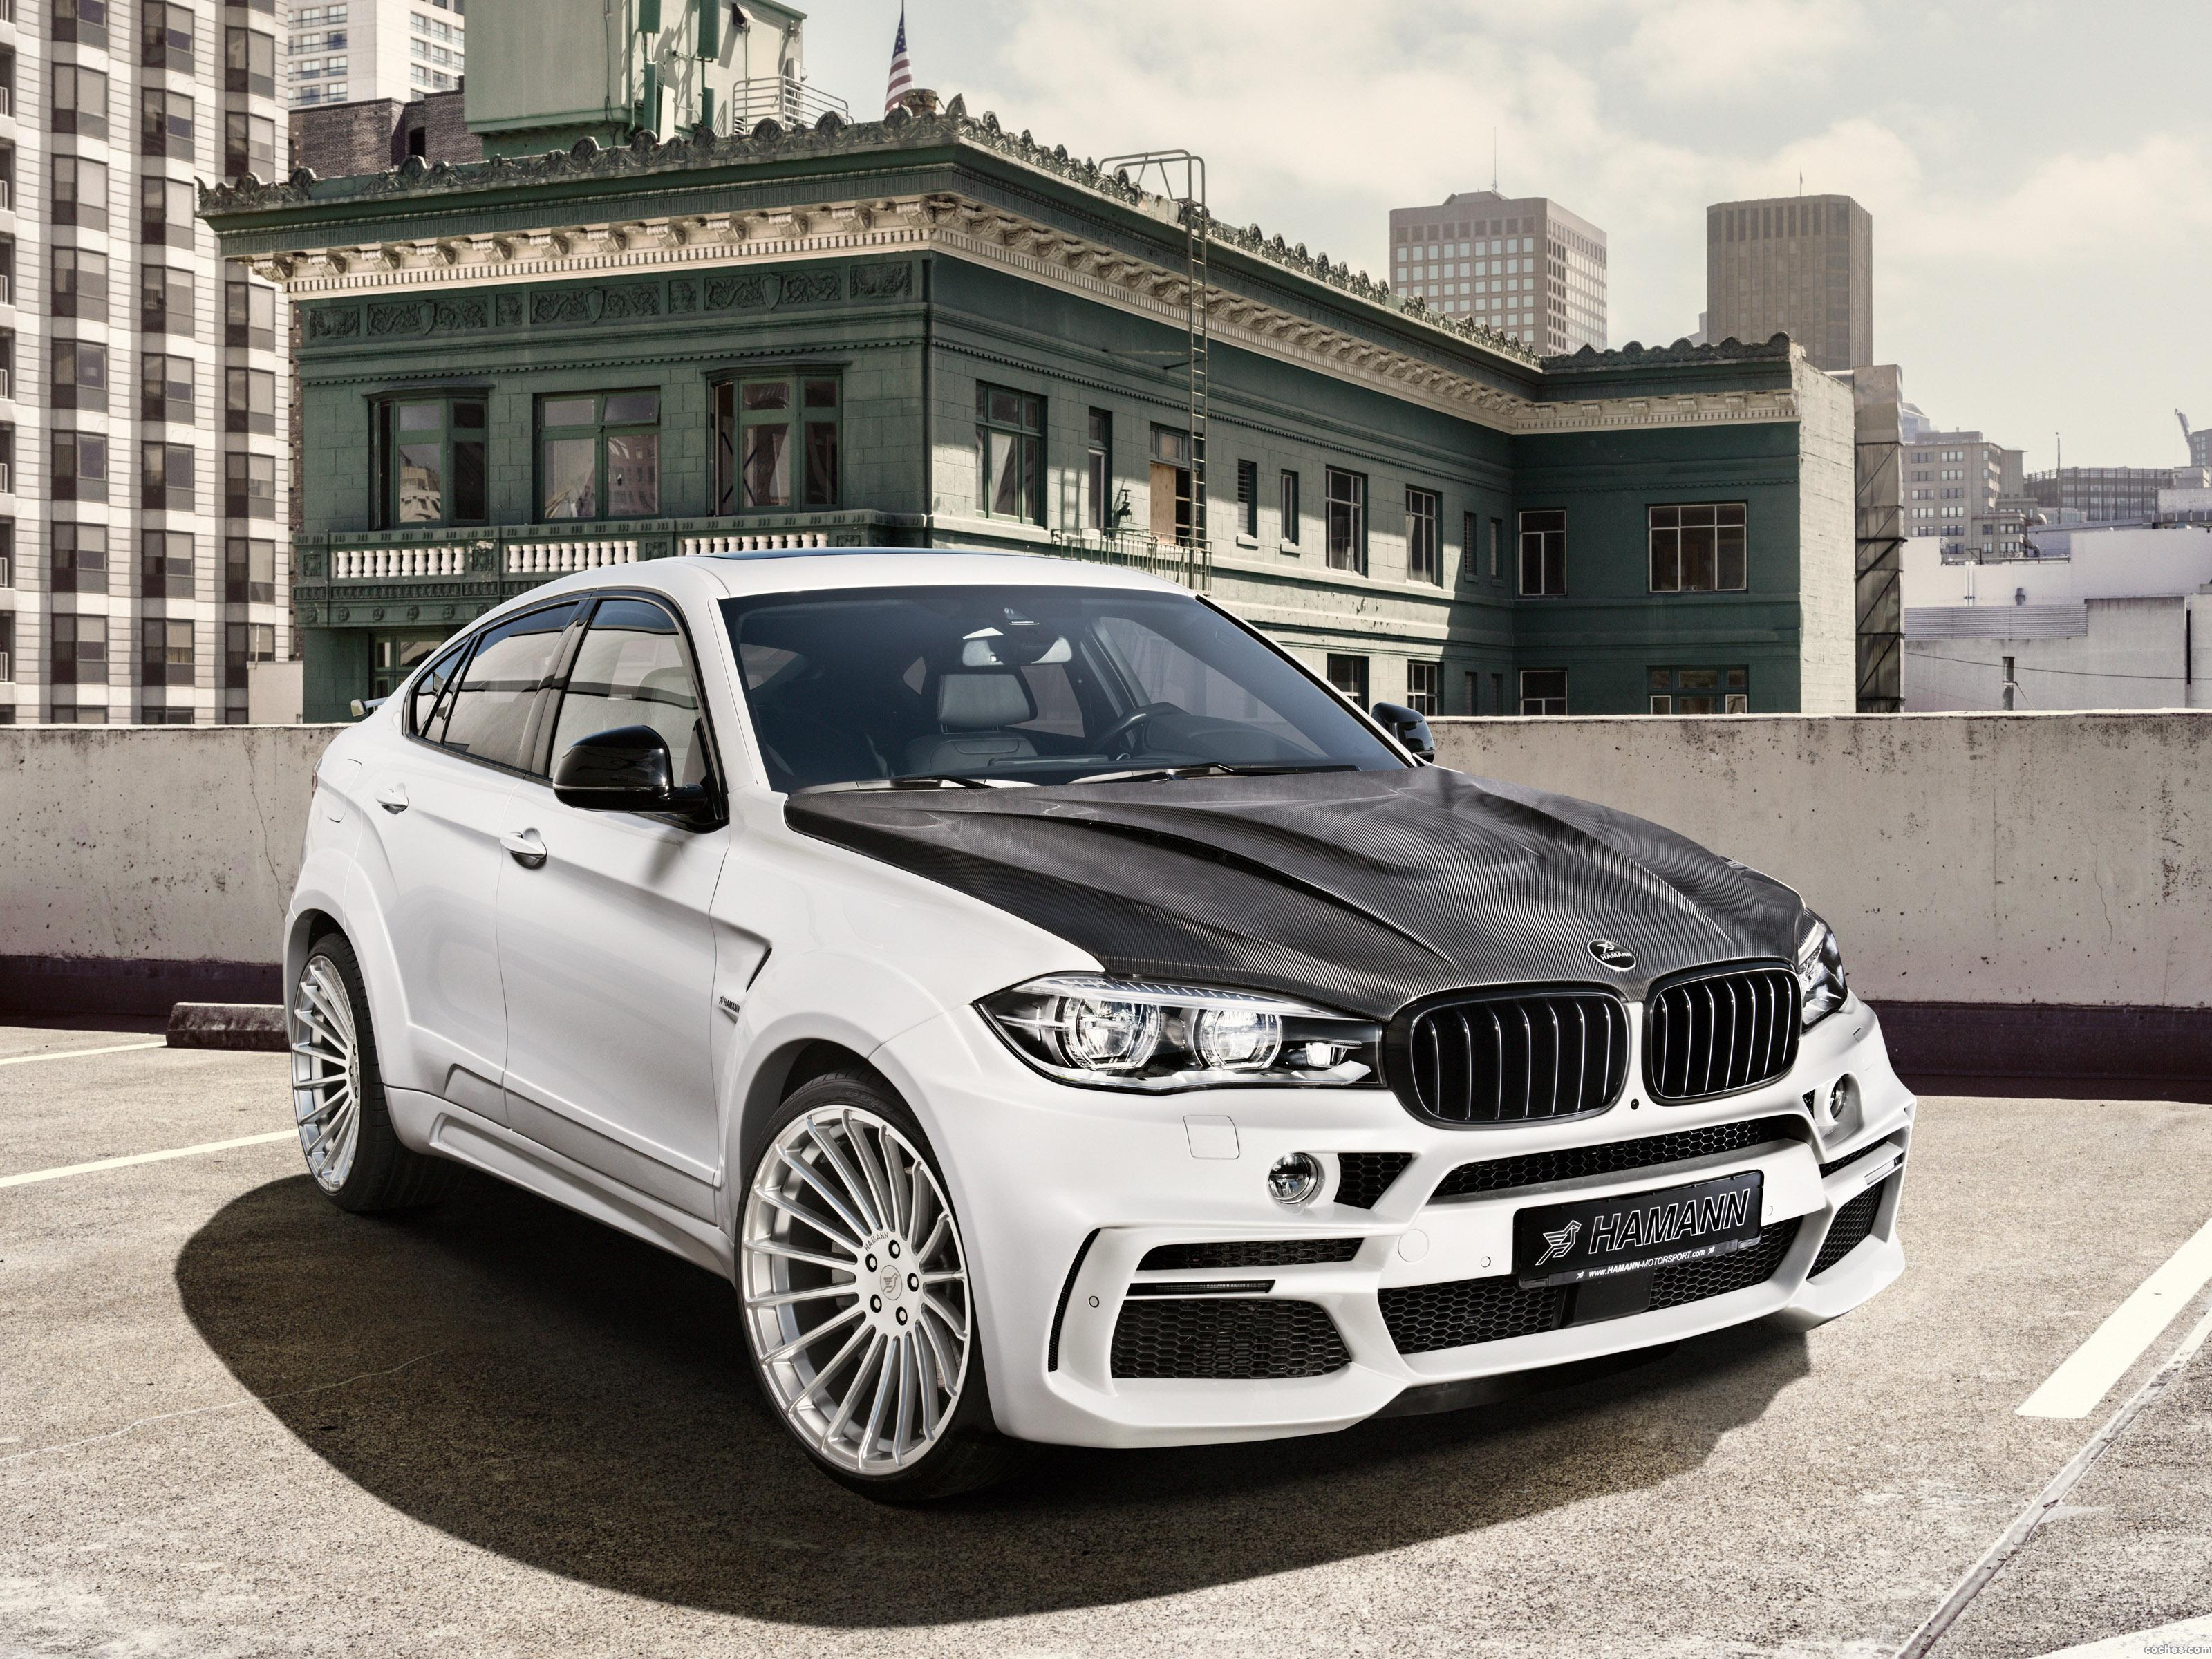 Foto 0 de Hamann BMW X6 M Widebody F86 2016